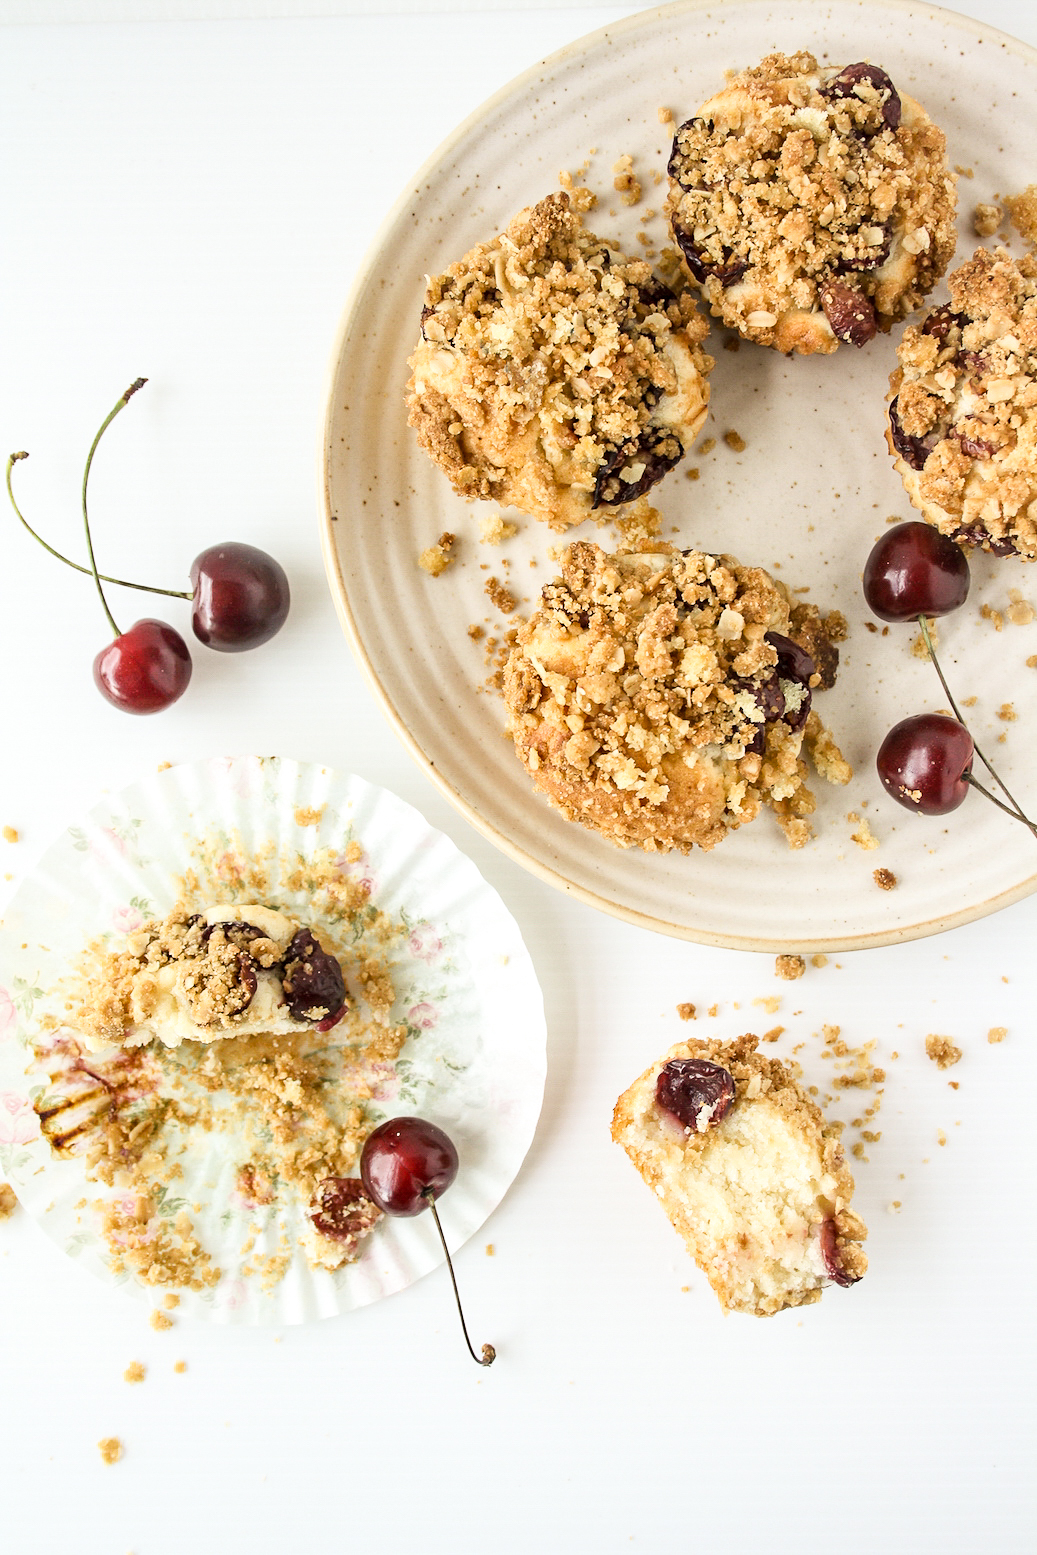 Simple, eggless, buttery cakes topped with fresh cherries and brown sugar streusel!